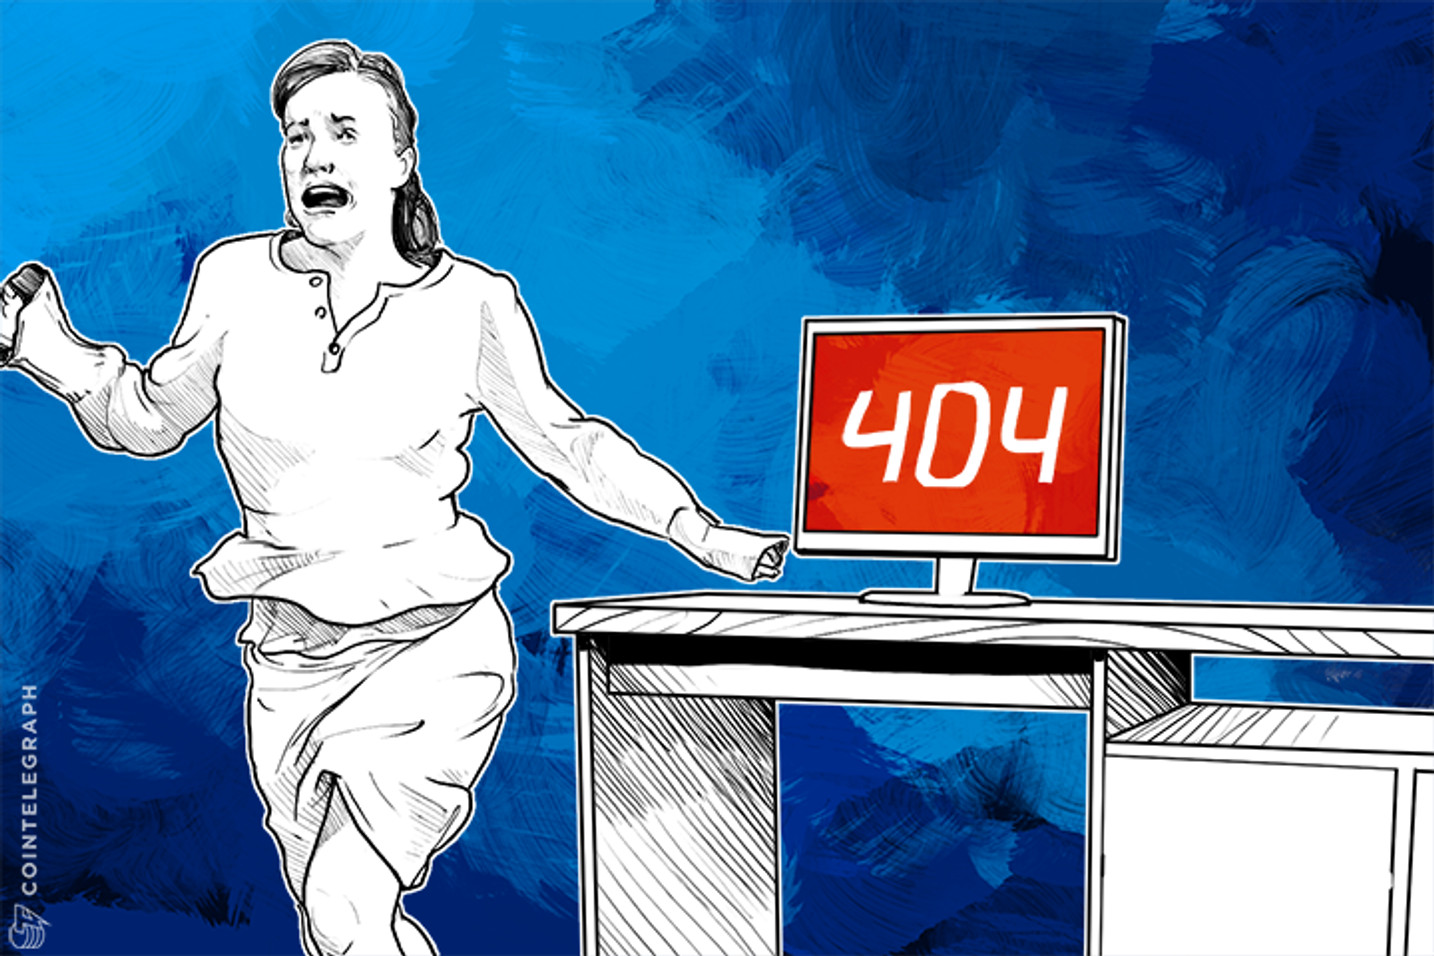 404 Forever? The Present and Future of Internet Censorship